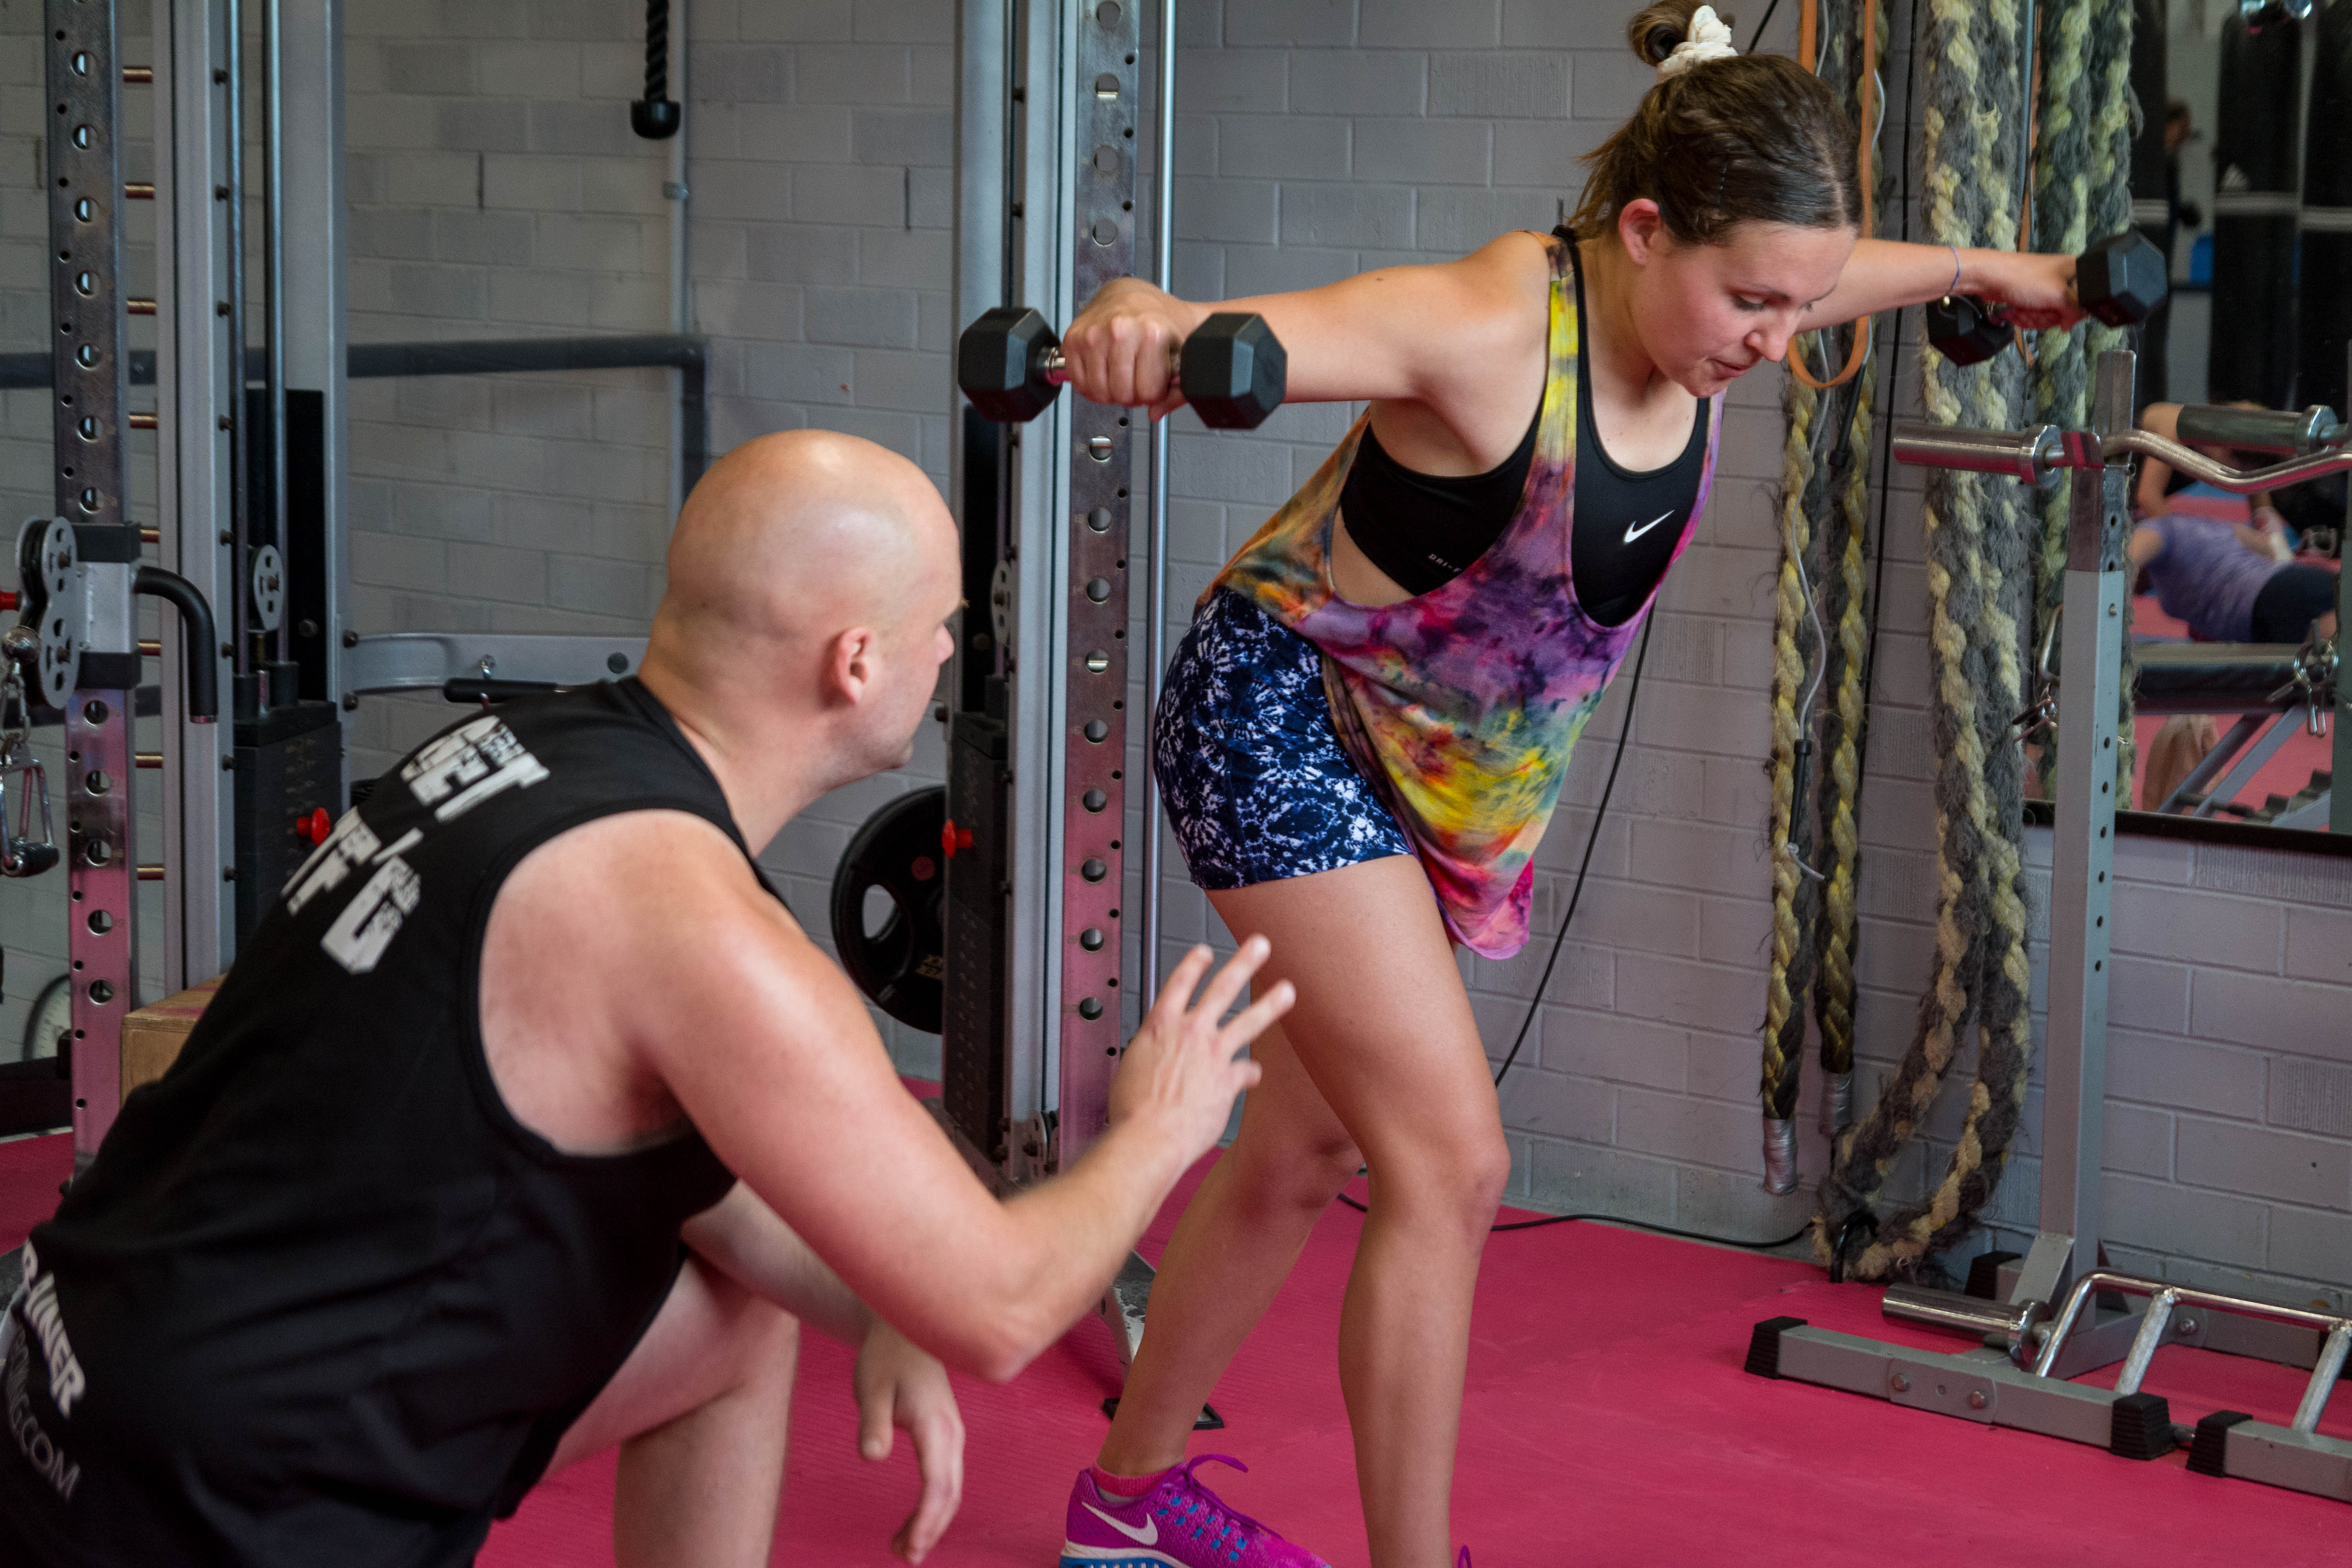 Stay on track with Personal Trainers